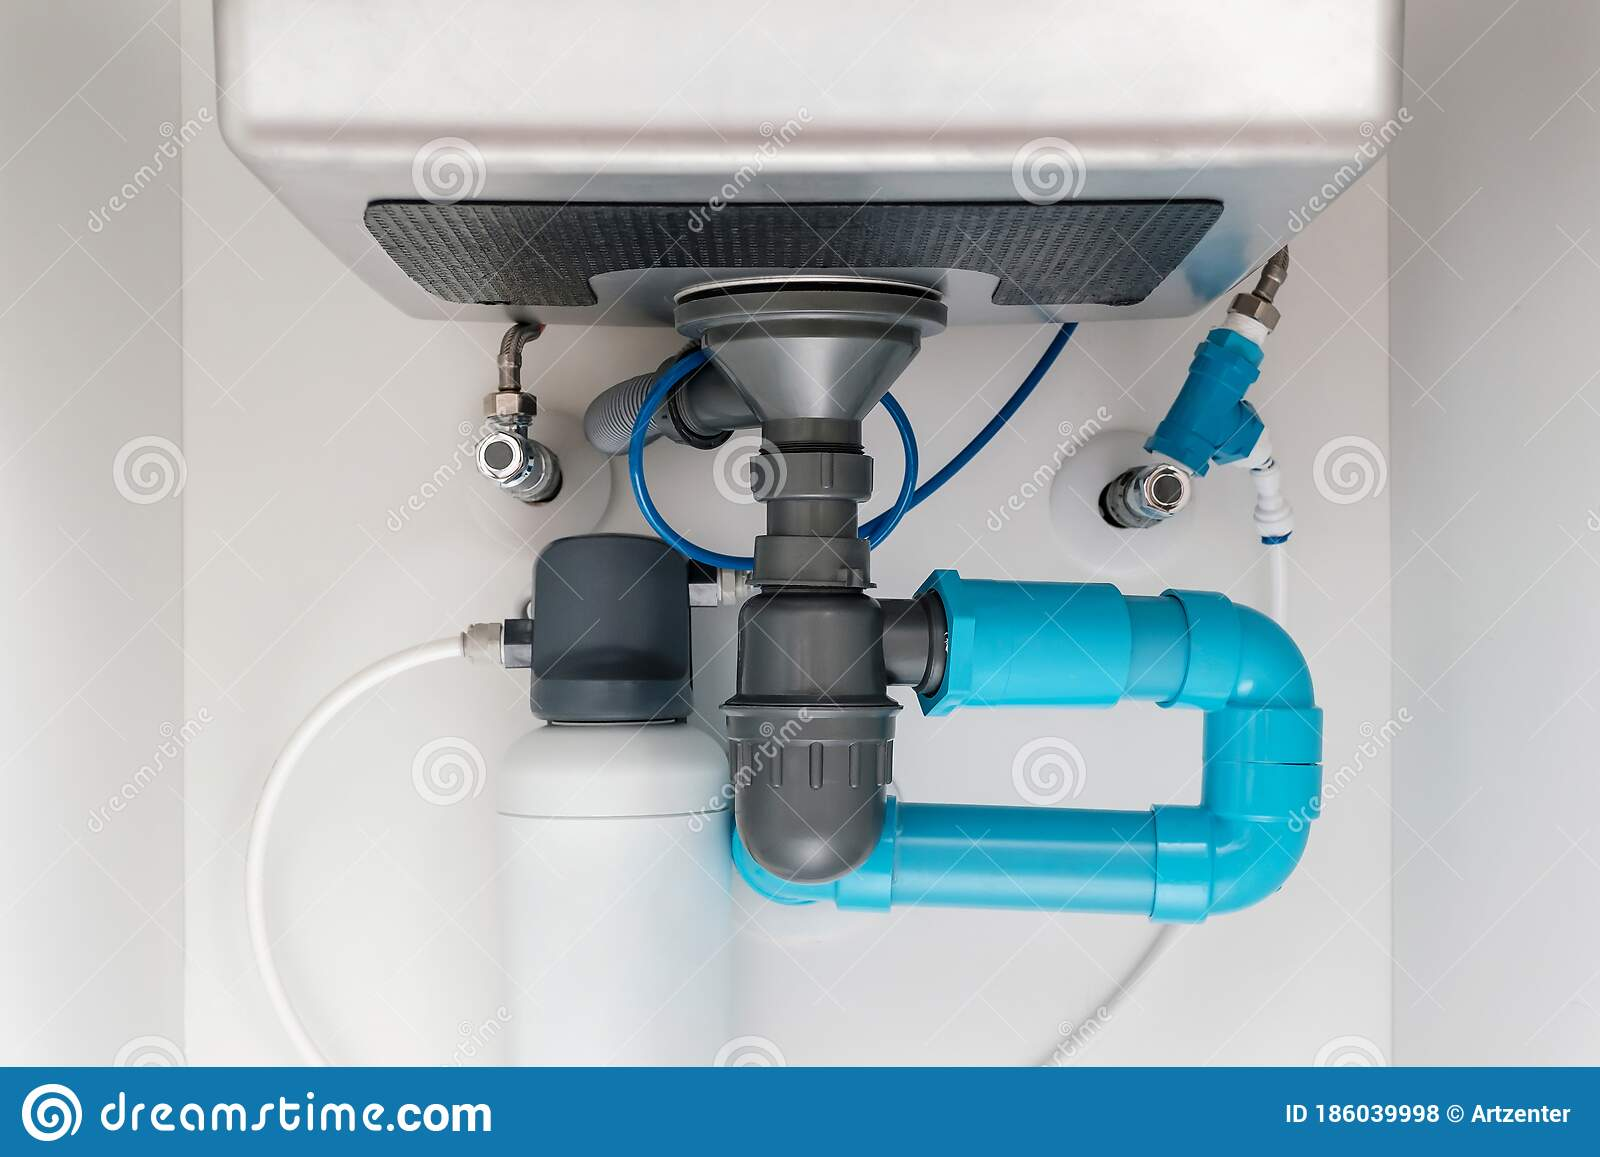 Under Sink Plumbing And Drainage System Water Purification System Install Under Modern Kitchen Sink Stock Photo Image Of Apartment Component 186039998